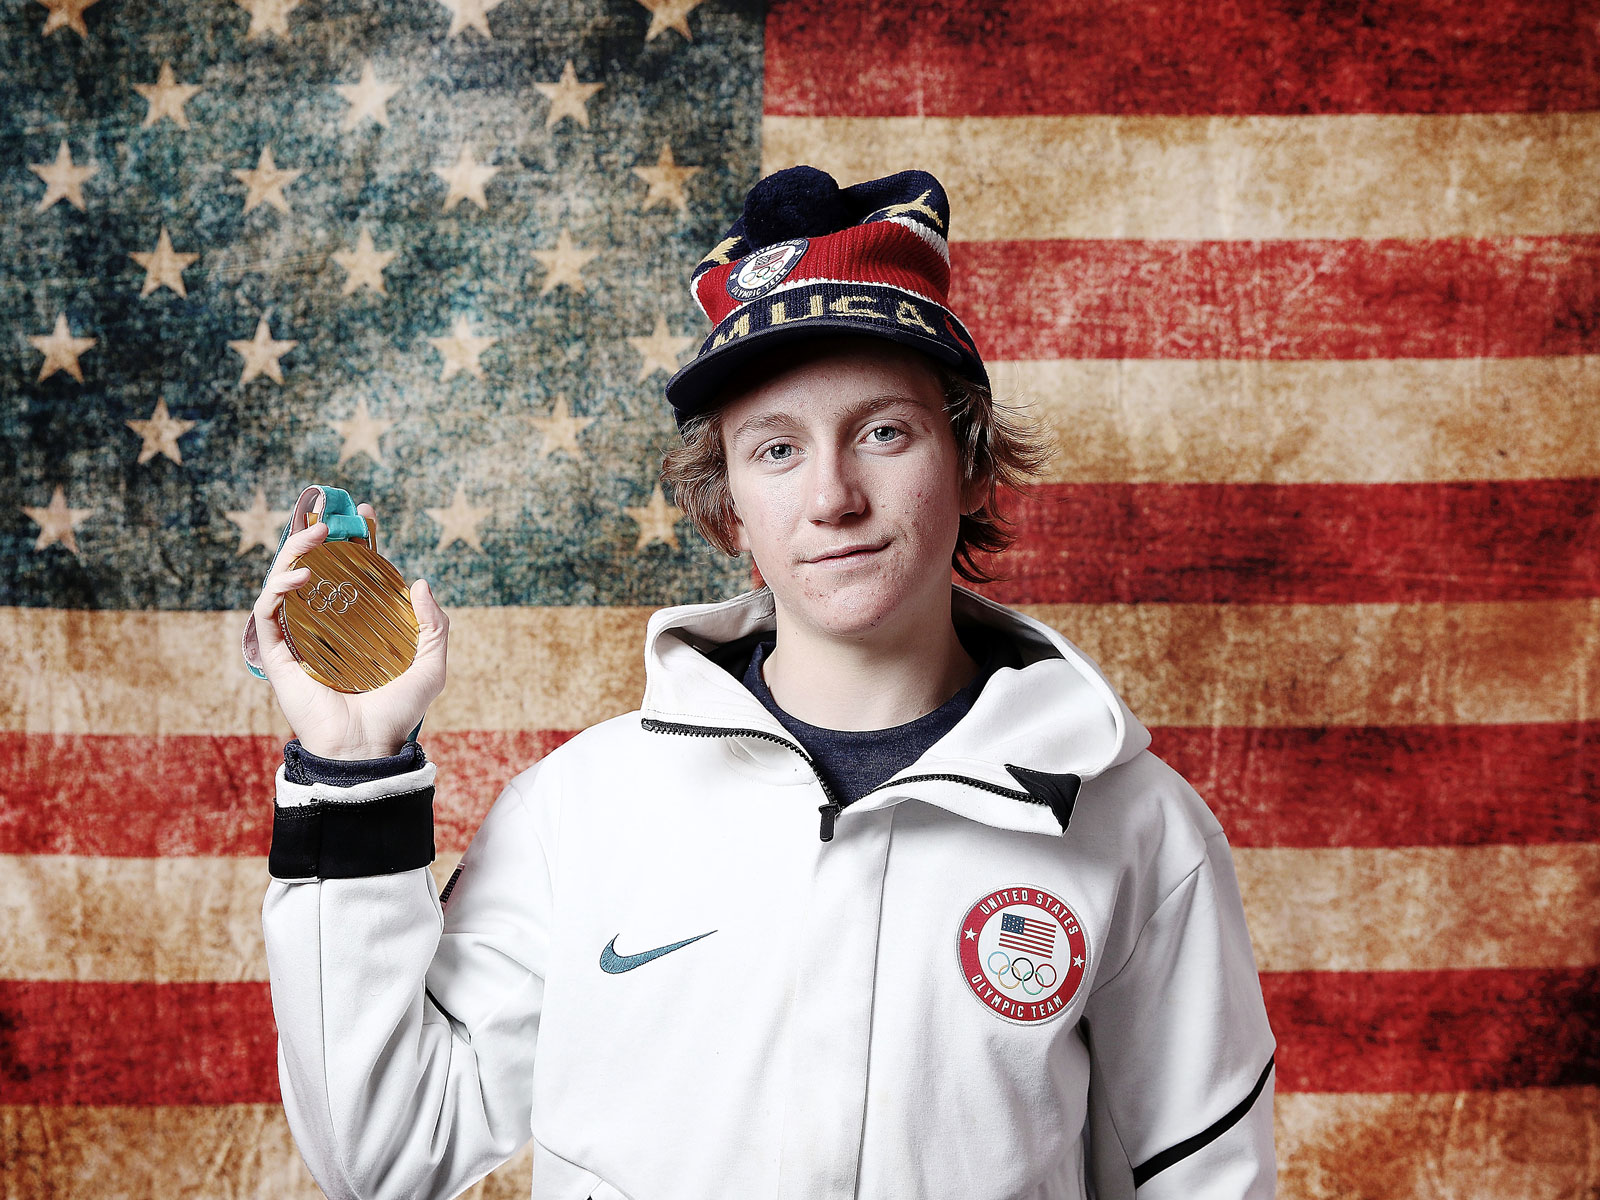 5 Things You Didn't Know About Snowboarder Red Gerard (Including His Go-To Burrito Choice)